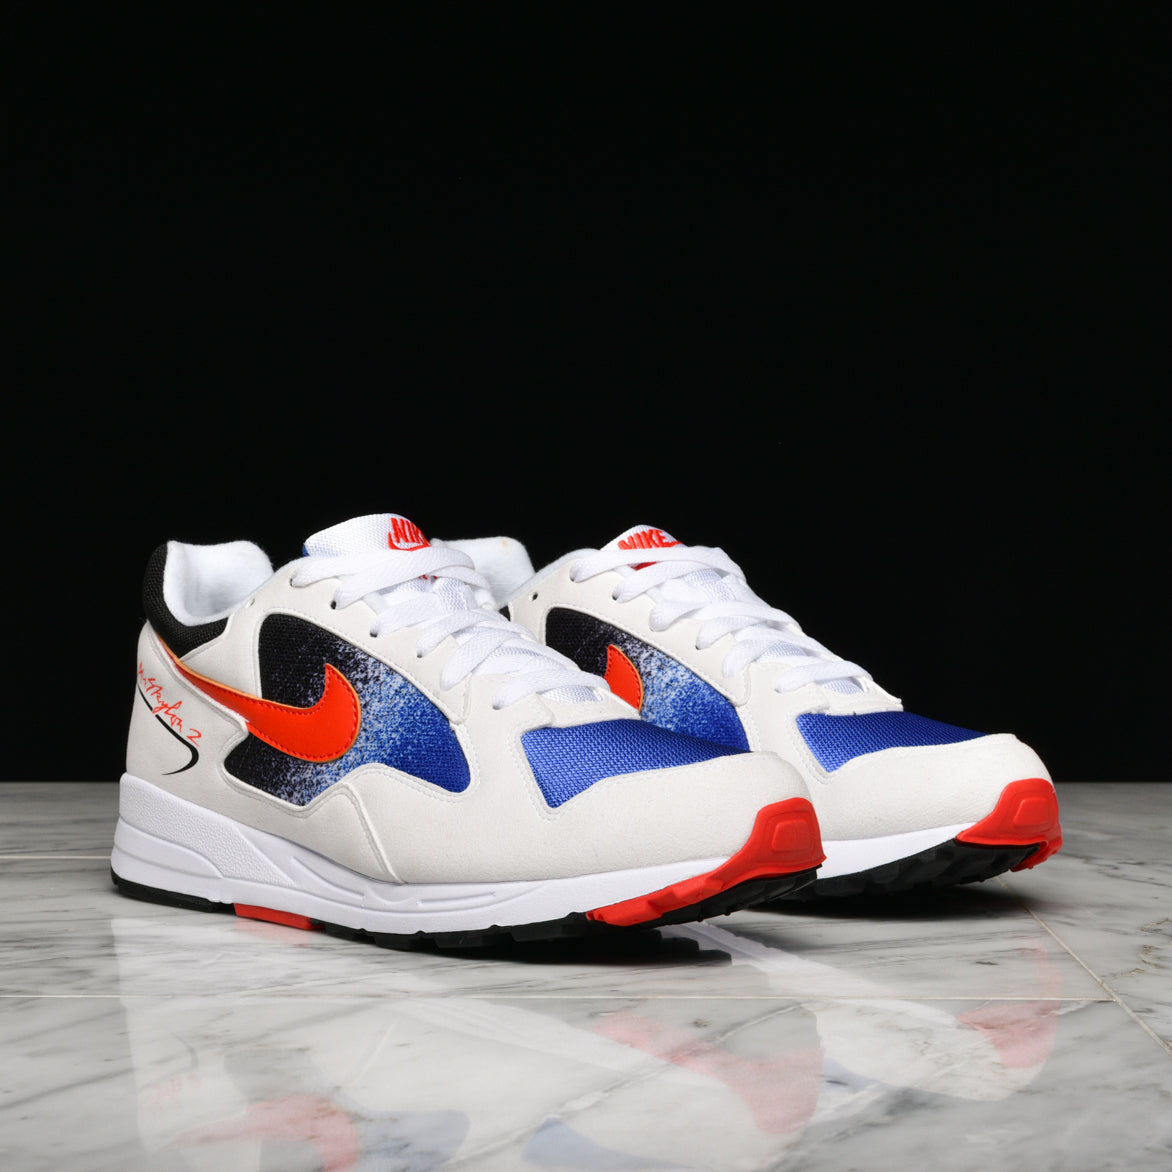 AIR SKYLON II - WHITE / TEAM ORANGE / HYPER ROYAL